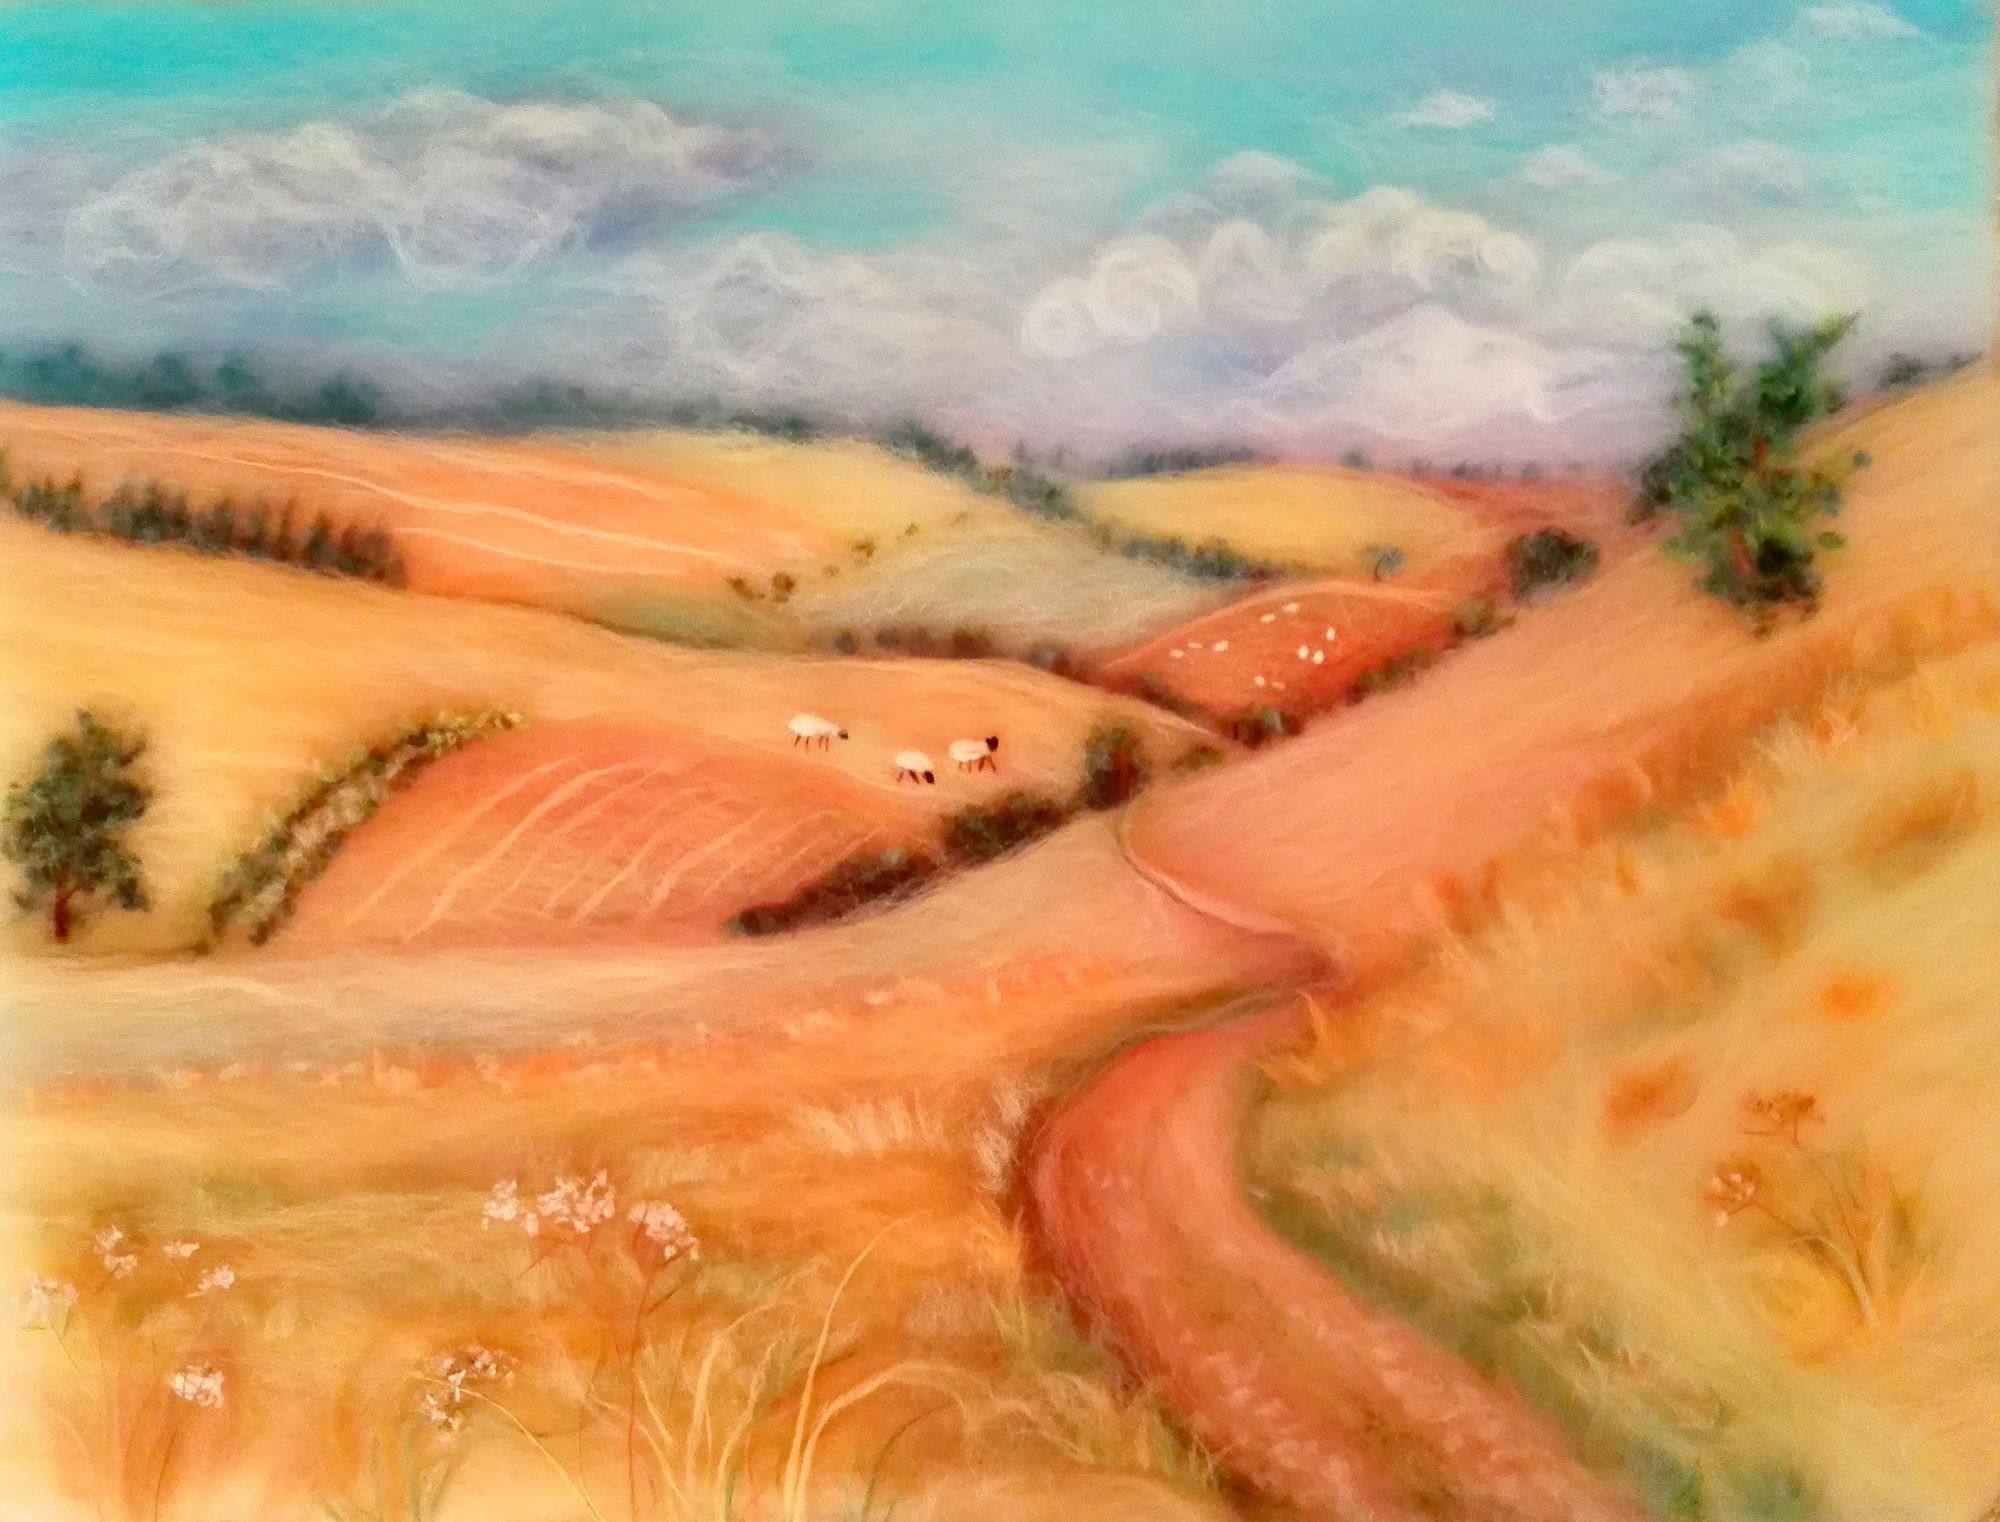 'Landscape with cornfields' wool painting course